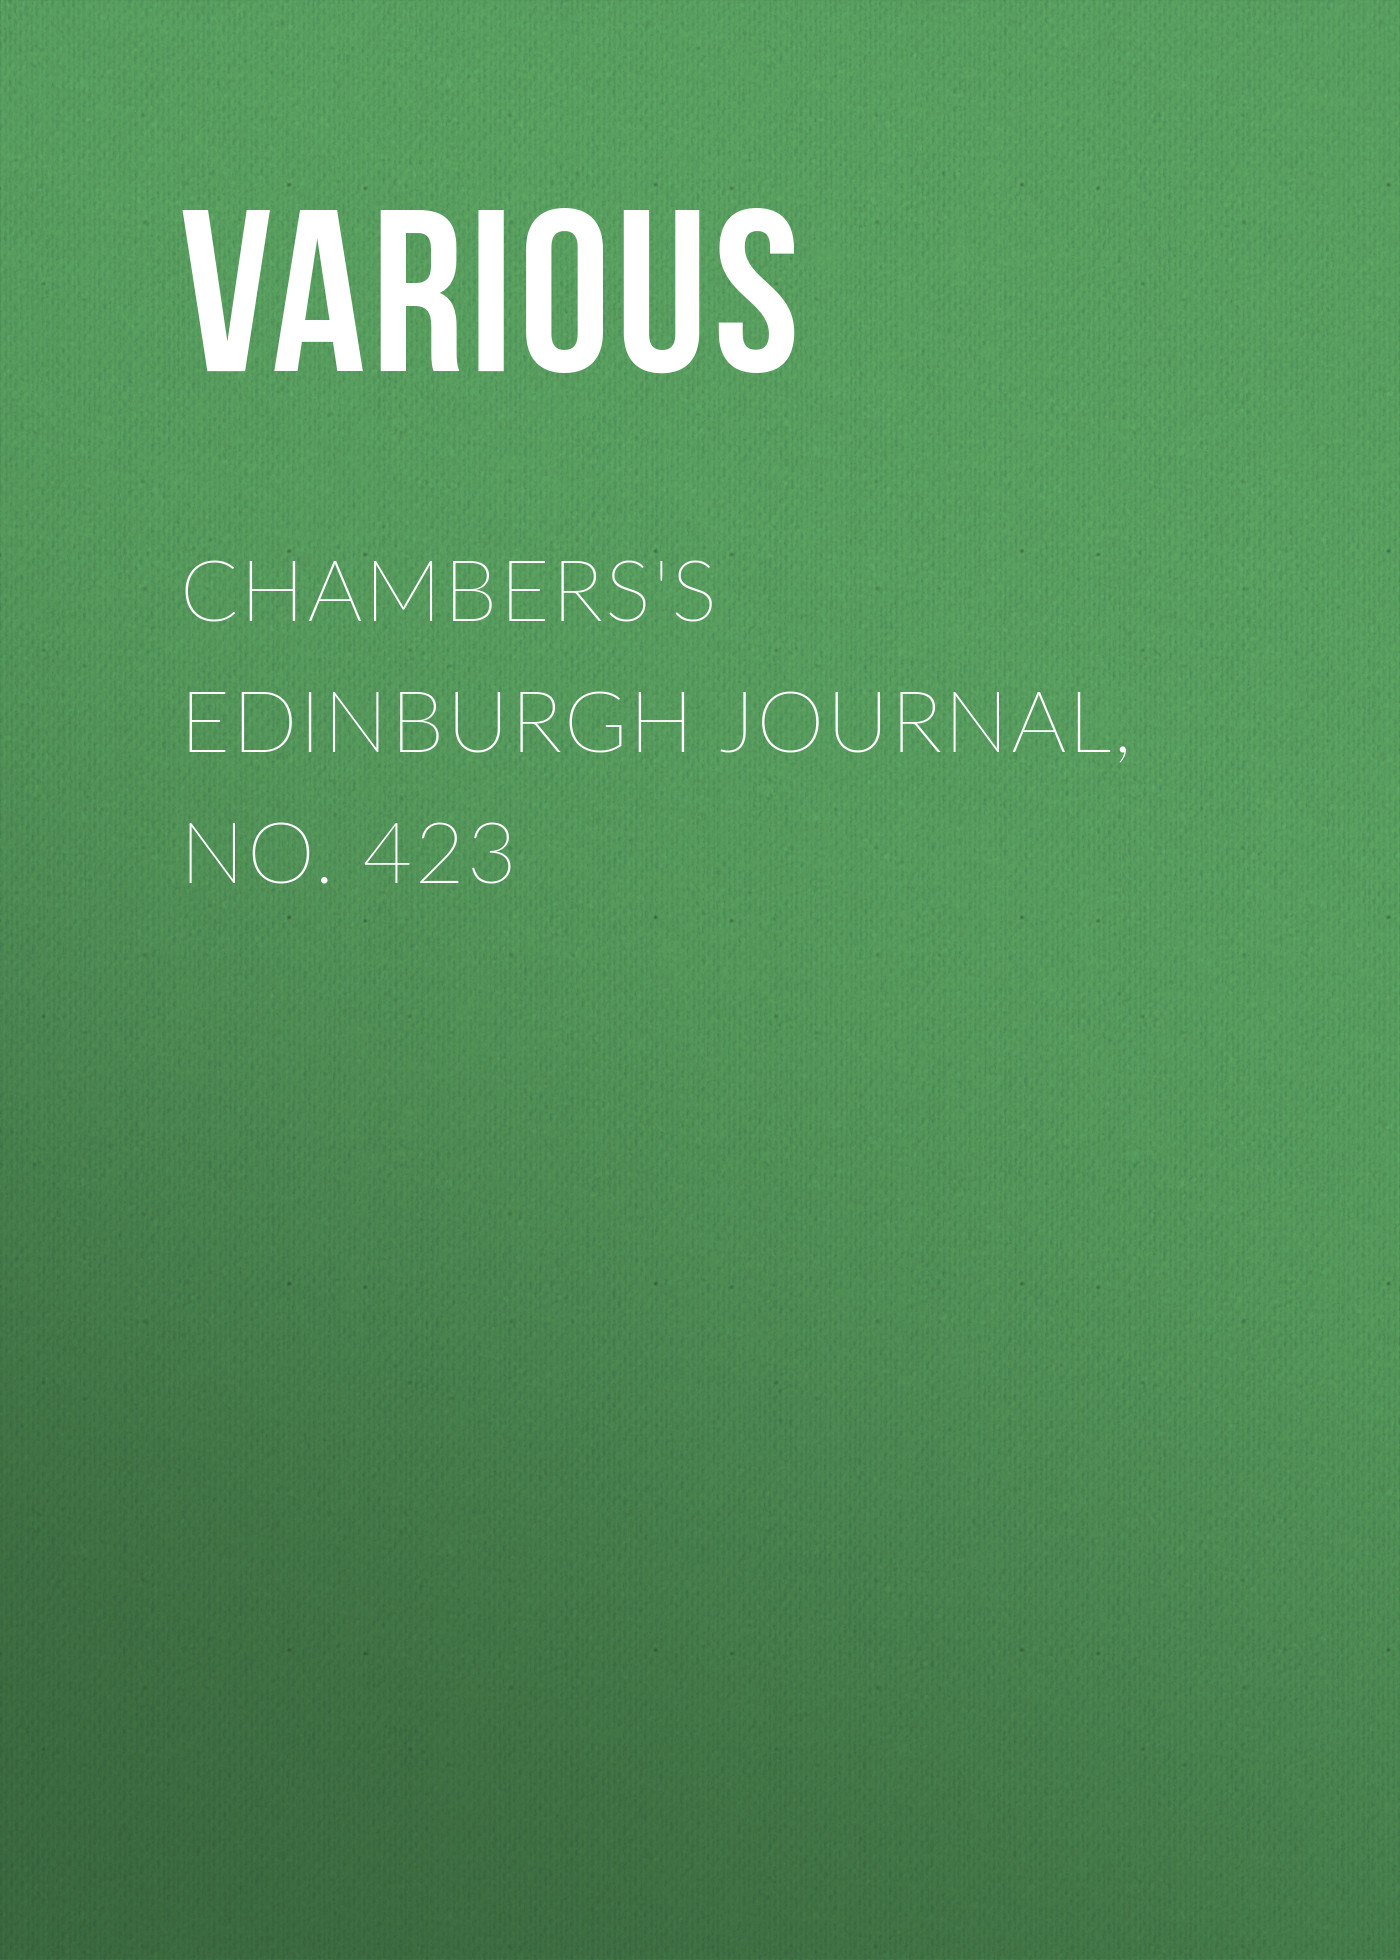 Chambers\'s Edinburgh Journal, No. 423 ( Various  )